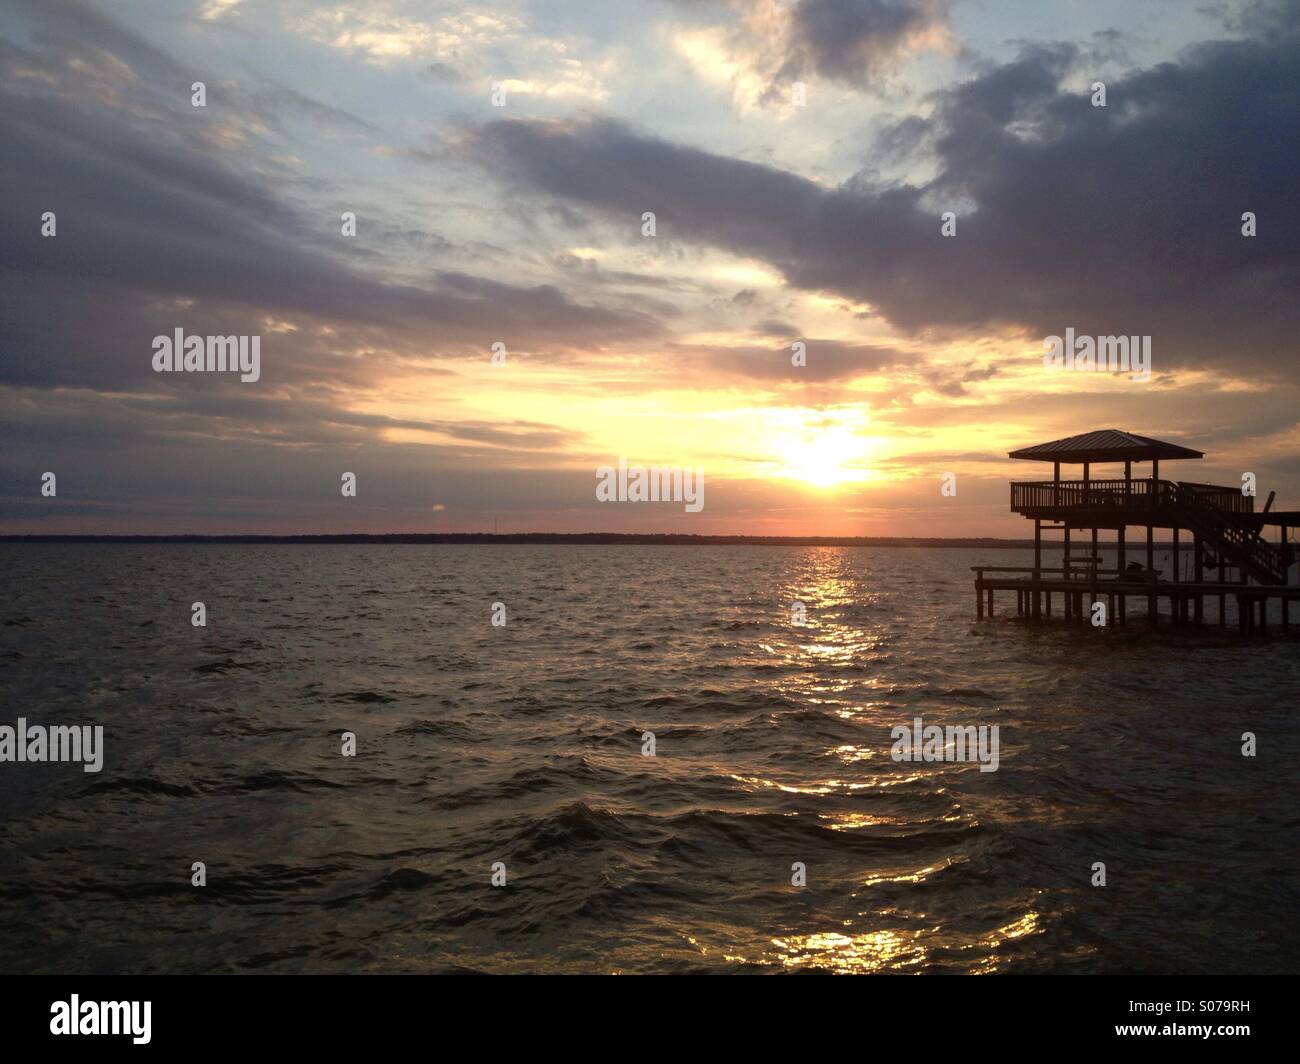 Sunset on Lake Livingston, Texas - Stock Image